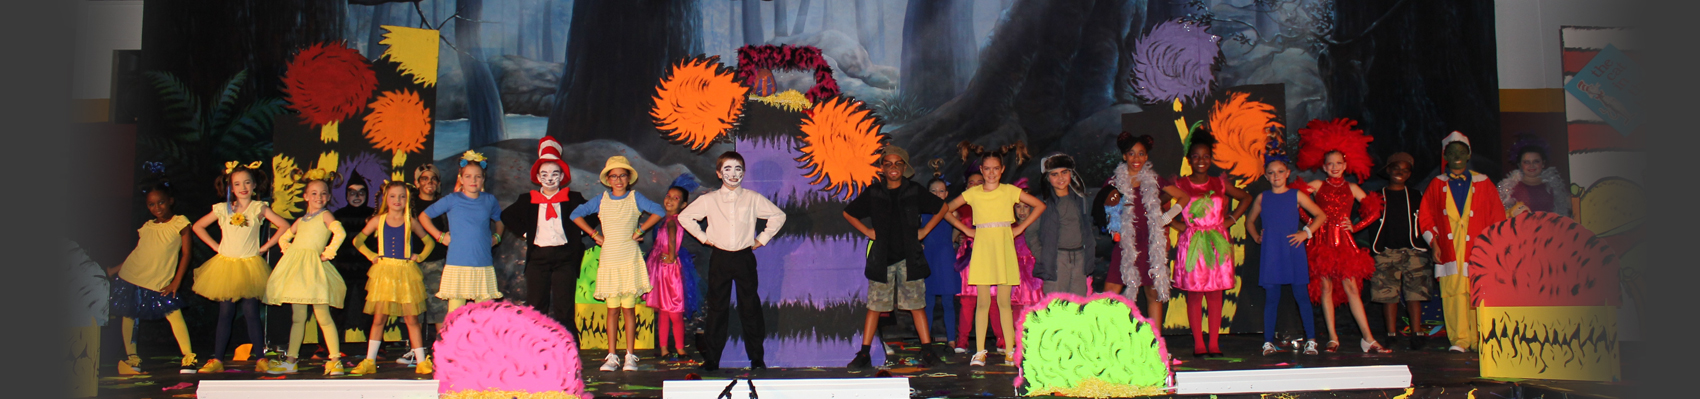 Dr. Seuss play